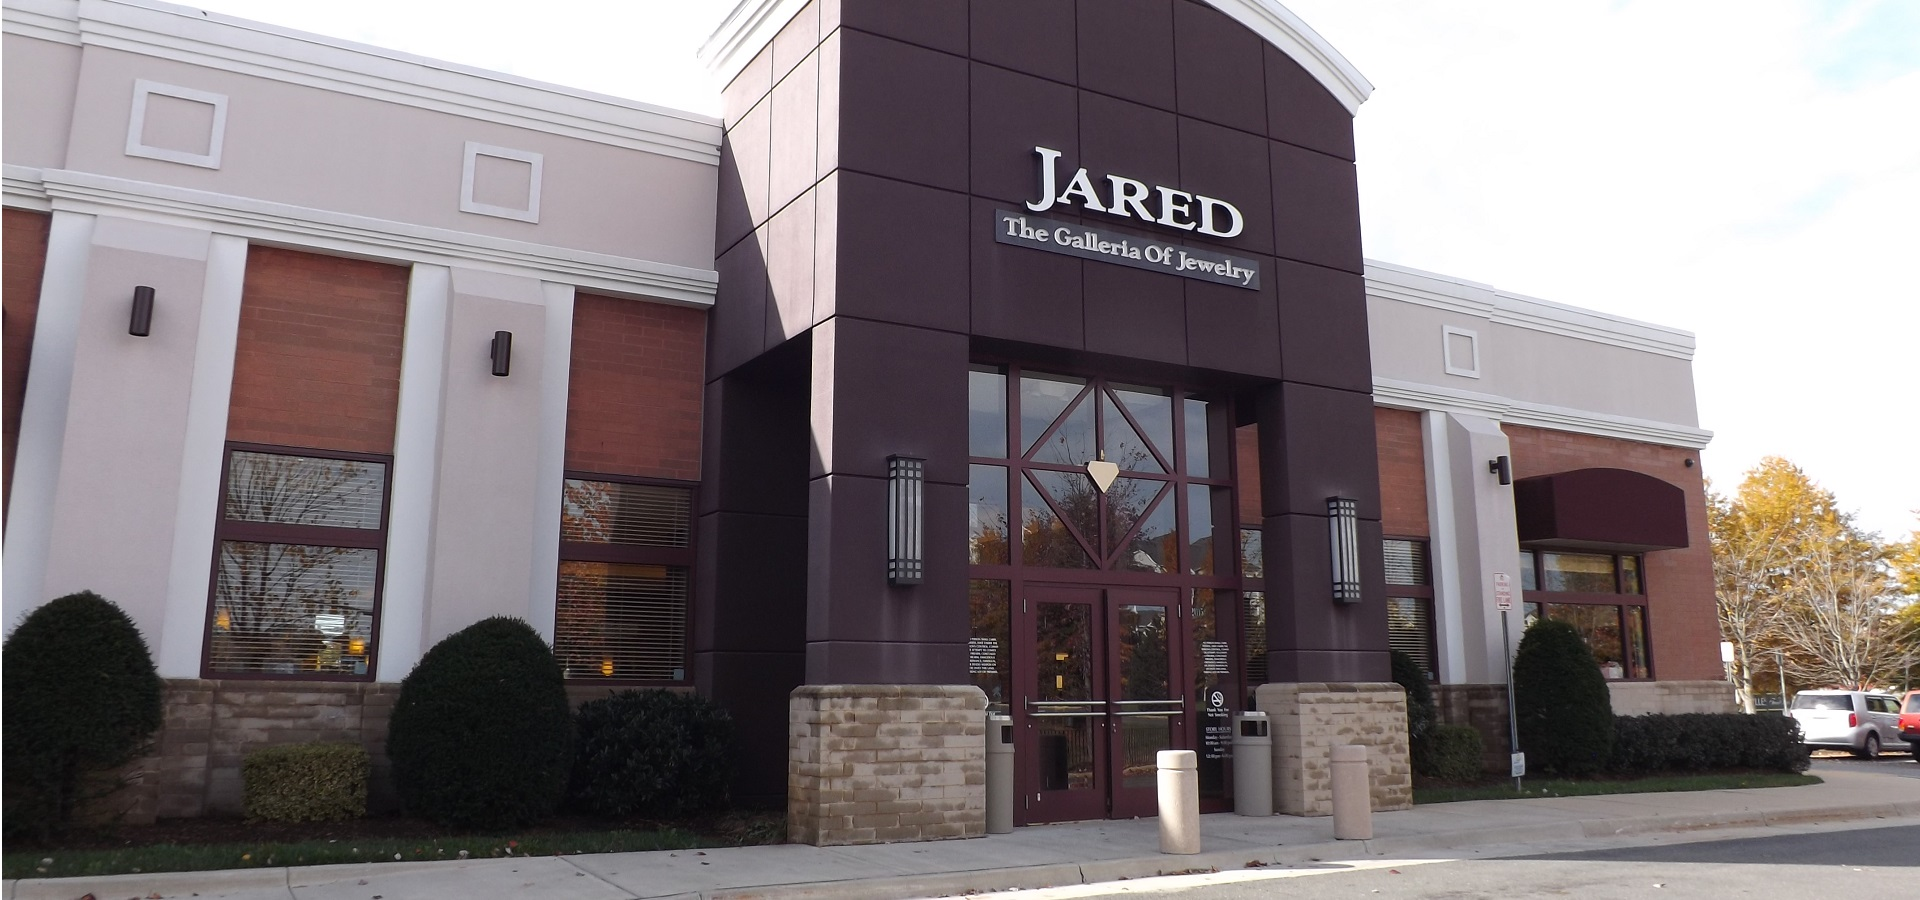 I love Jared's! The fact that I can have my ring sized, cleaned, soldered, etc.. in one day is AWESOME! Most jewelry stores send their customers rings off to have these services rendered, which can take weeks to get back.